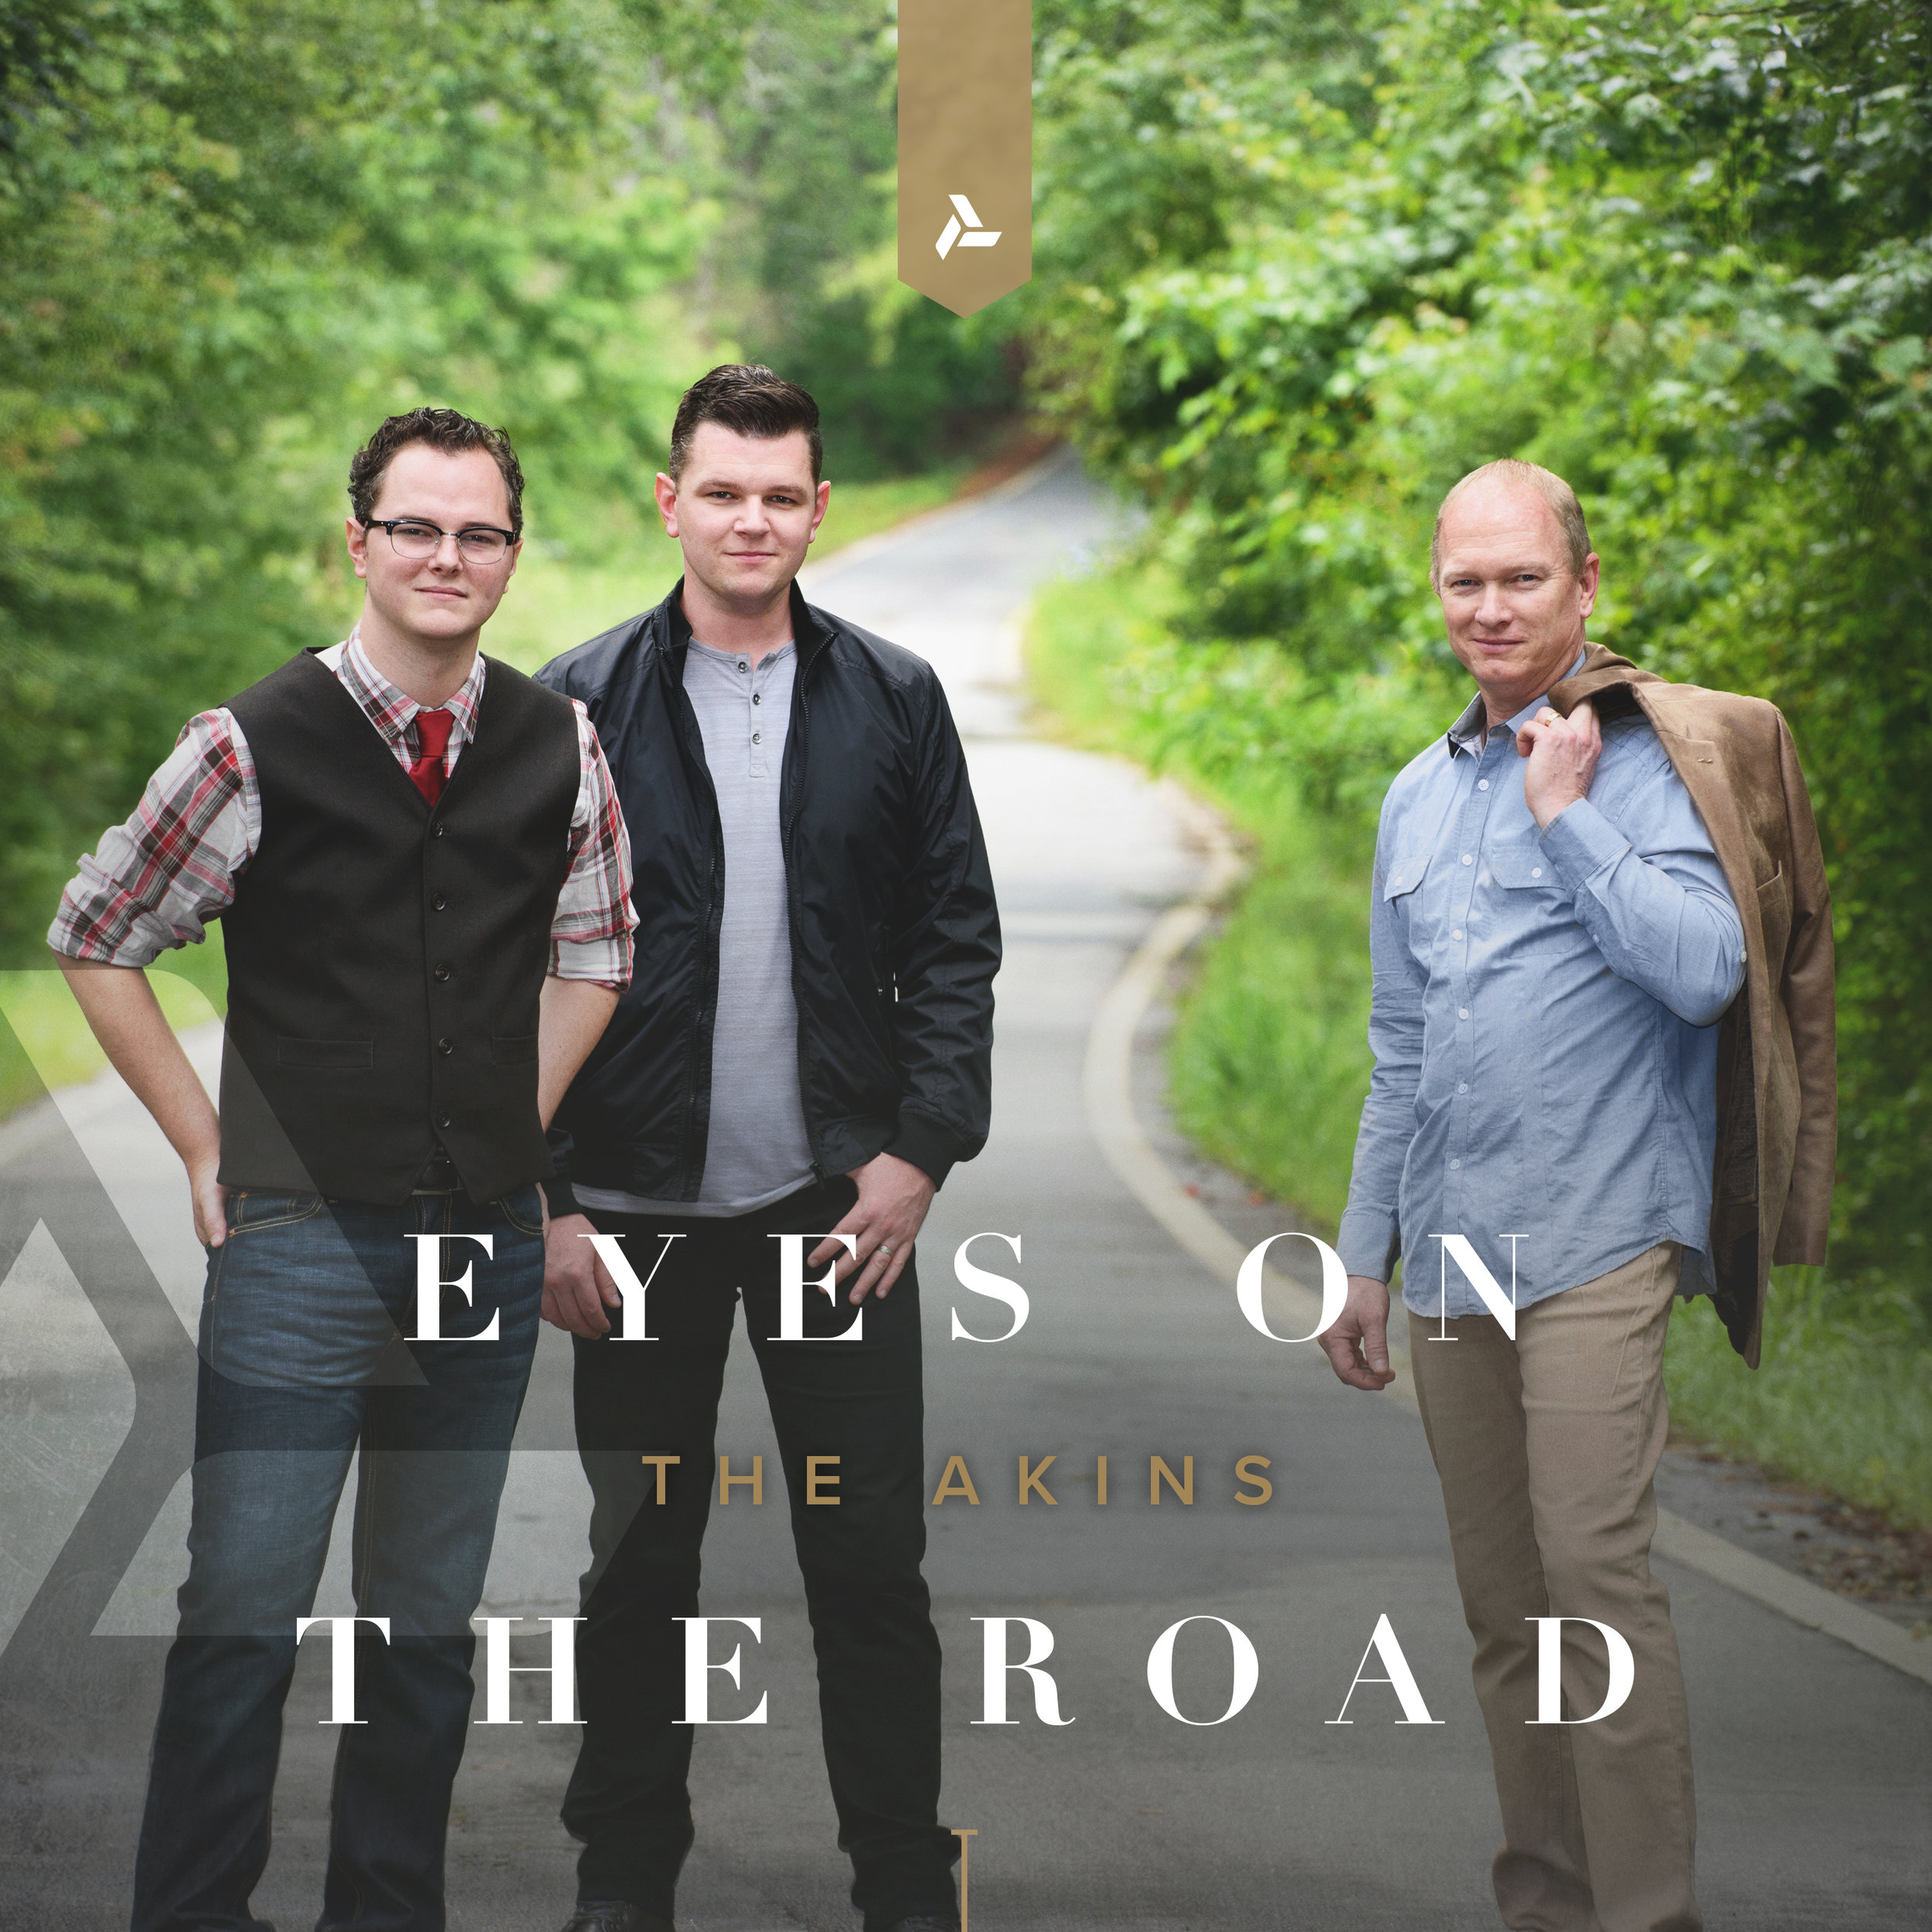 The AkinsEyes On The RoaD - 10 New Original SongsGet your copy today!